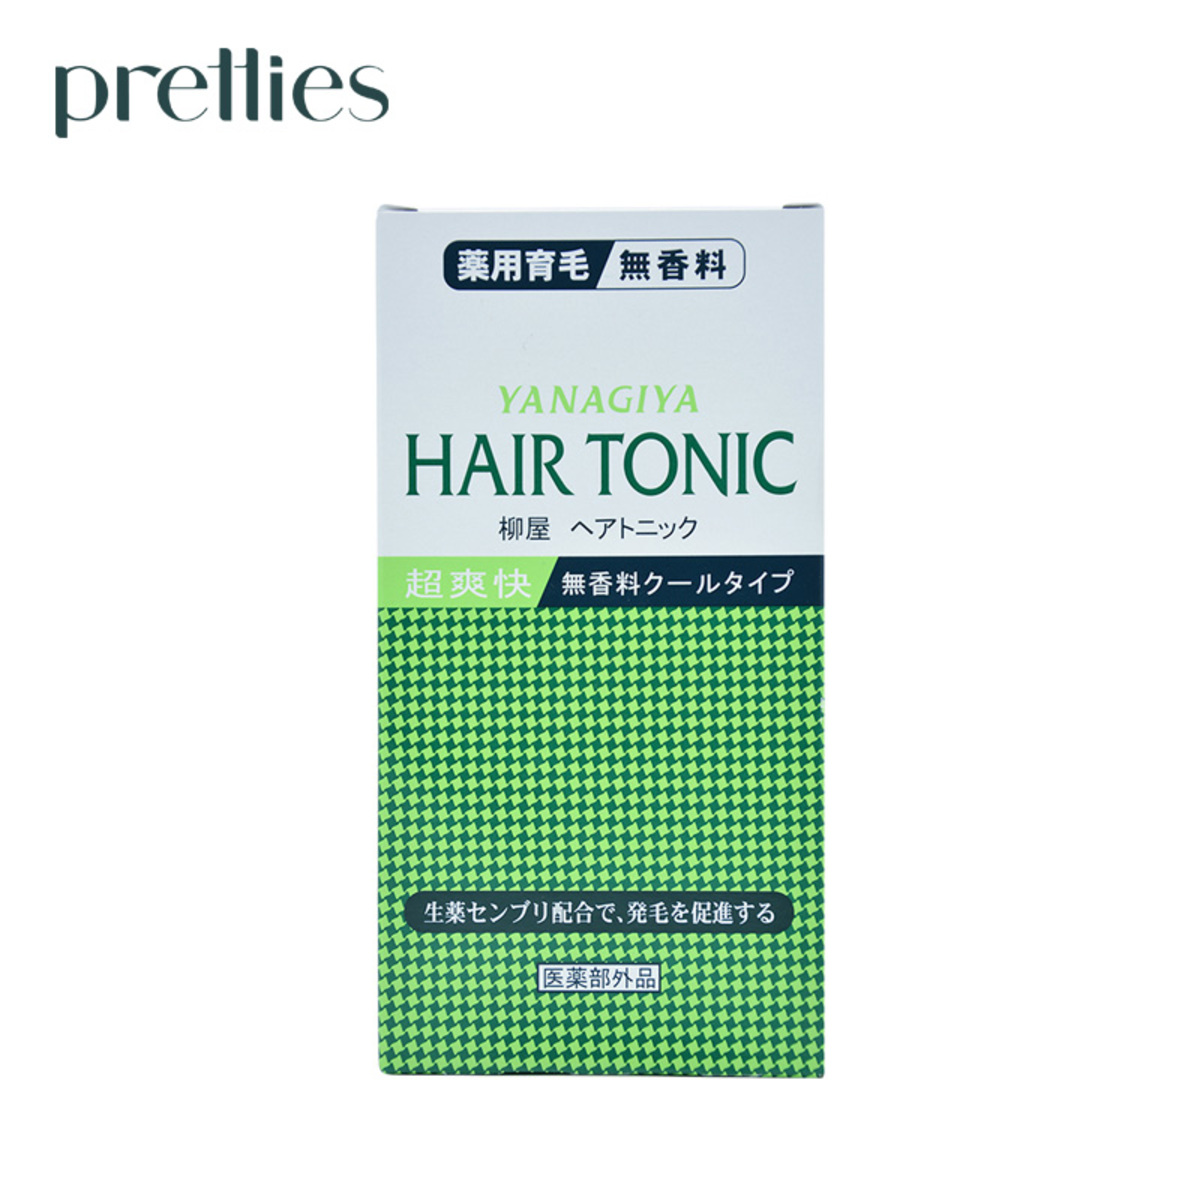 Hair Tonic (No Spices) 240ml (4903018113808)